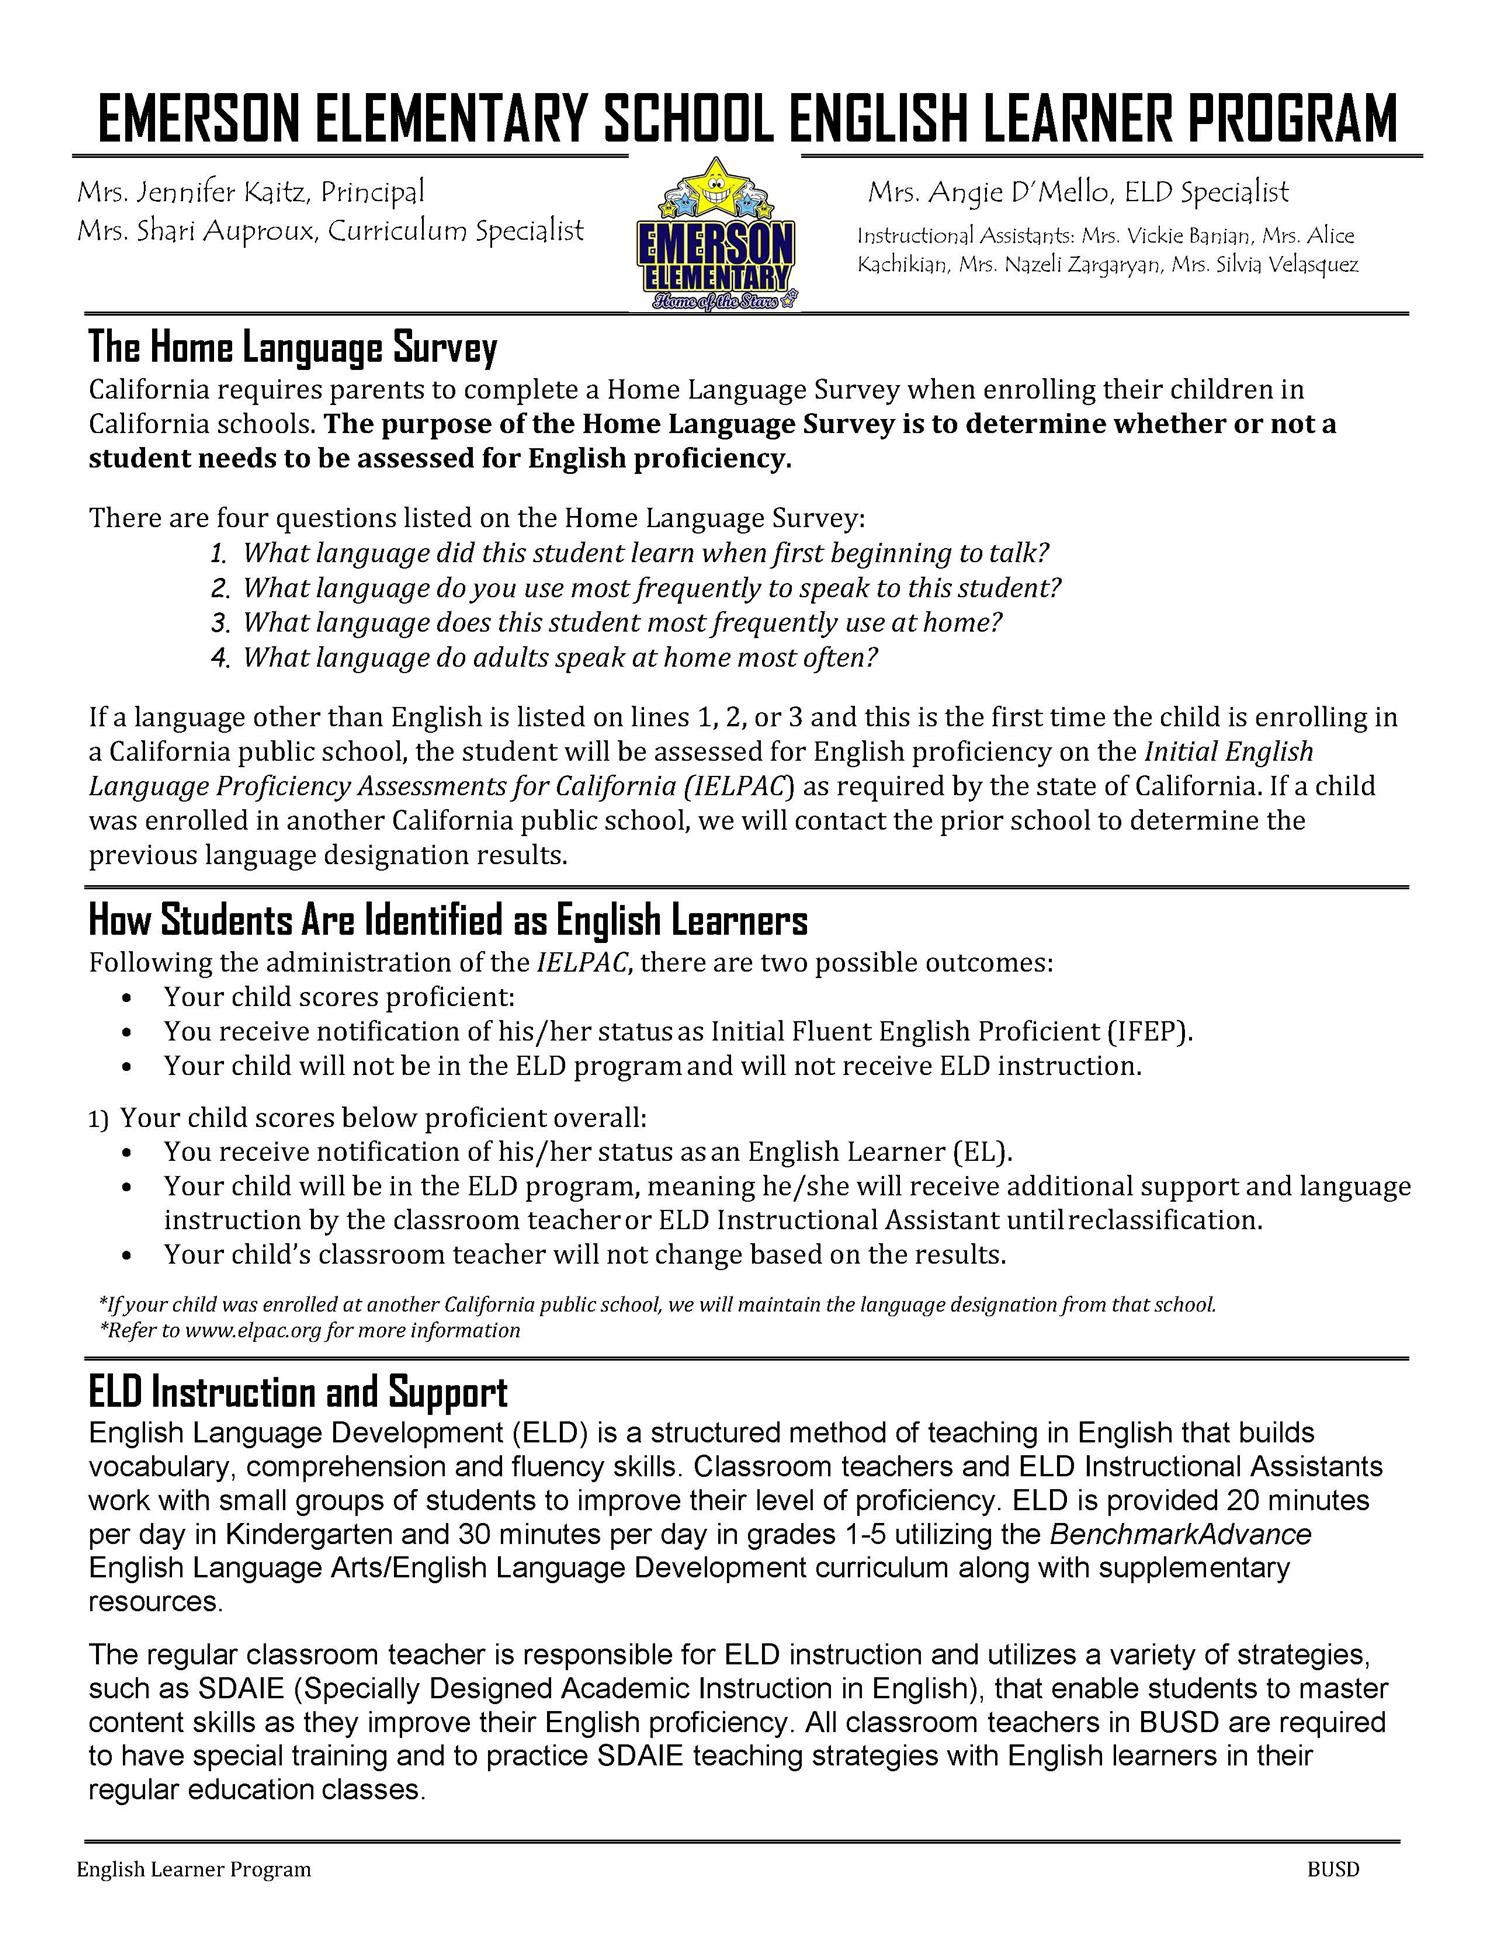 Link to Emerson English Learner Program (English) PDF